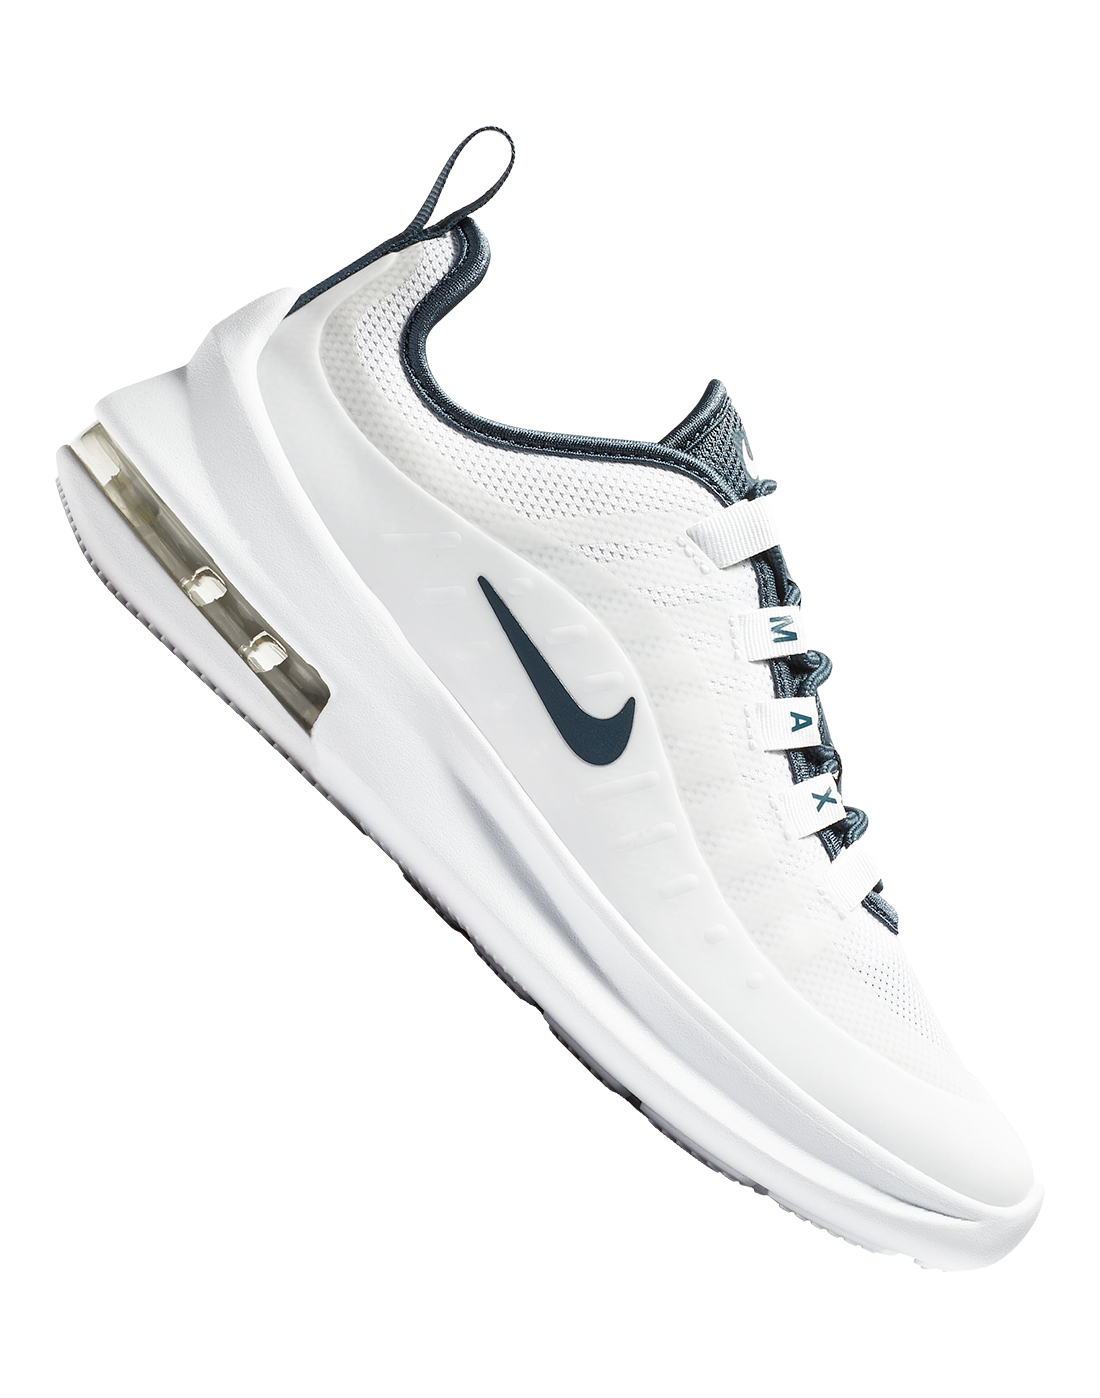 585dcacb23 Kid's White Nike Air Max Axis | Life Style Sports